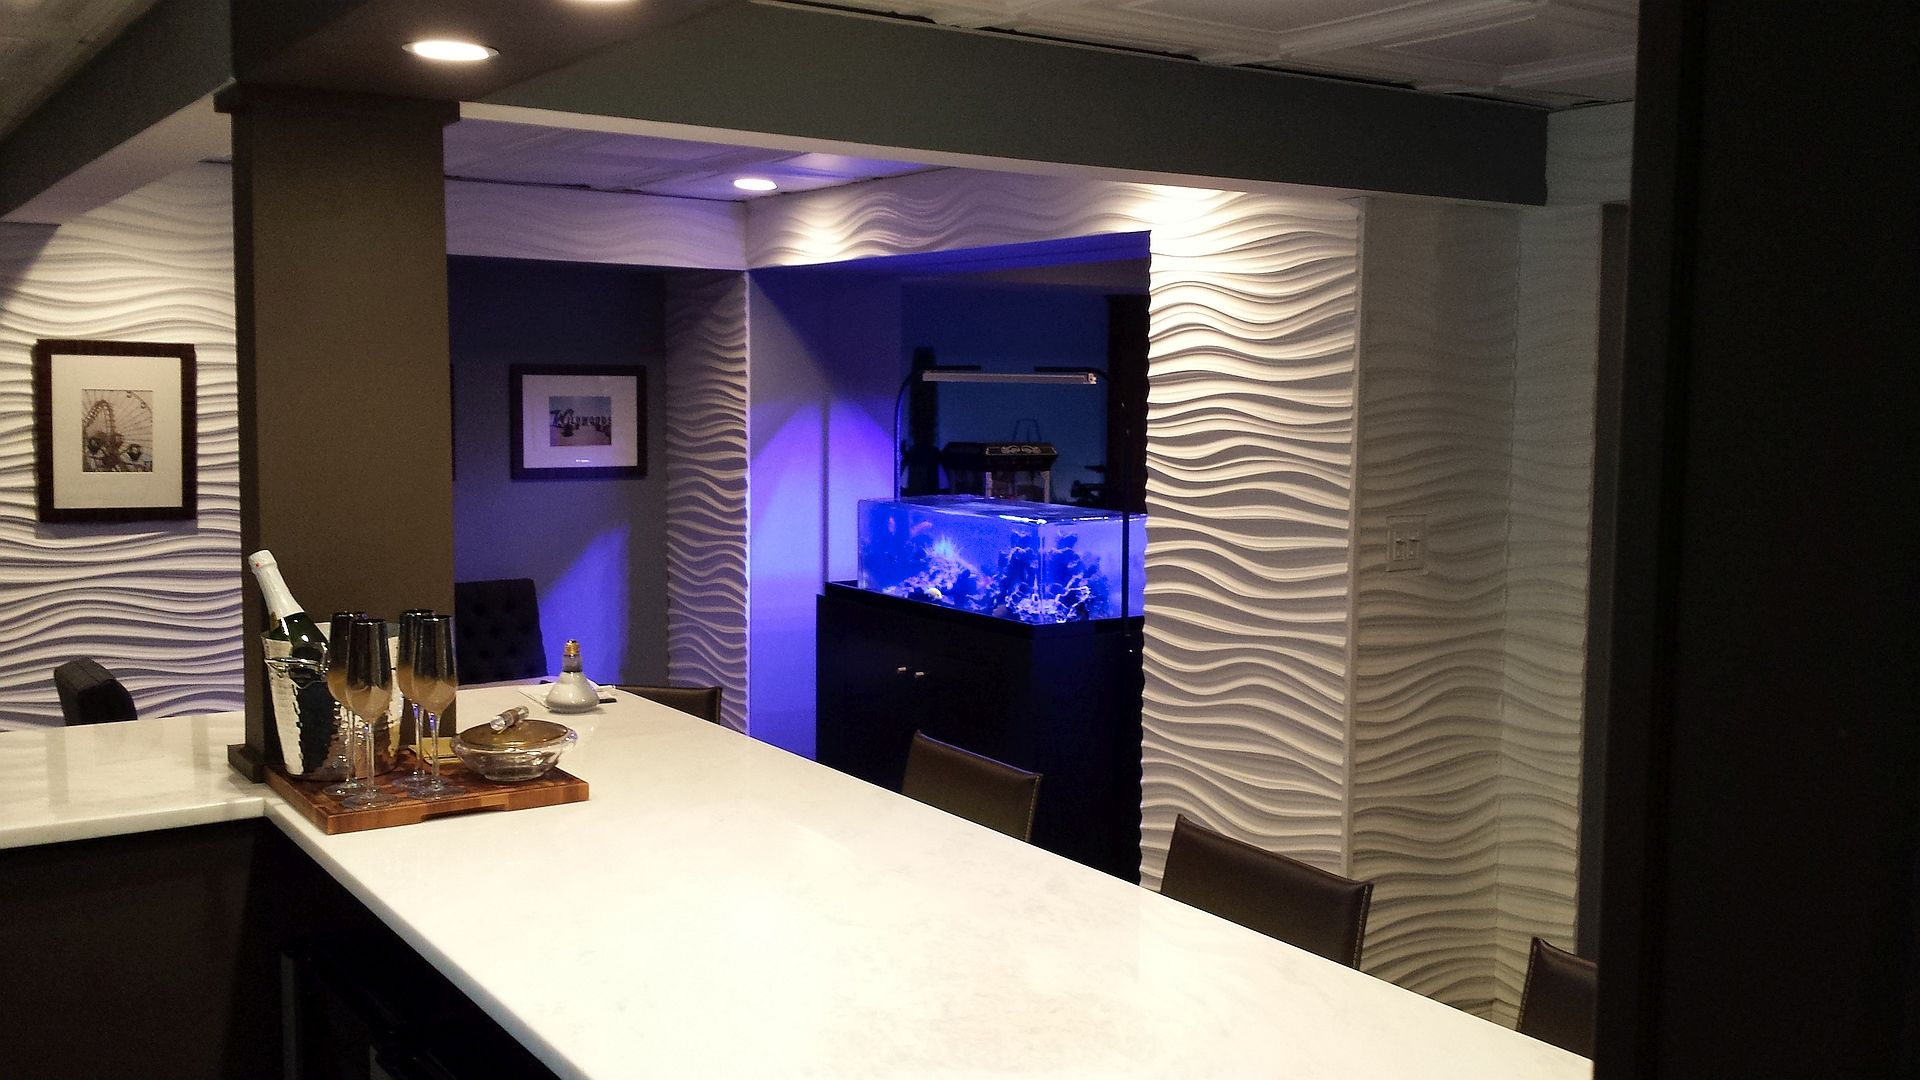 The man cave aquarium on completion of the project